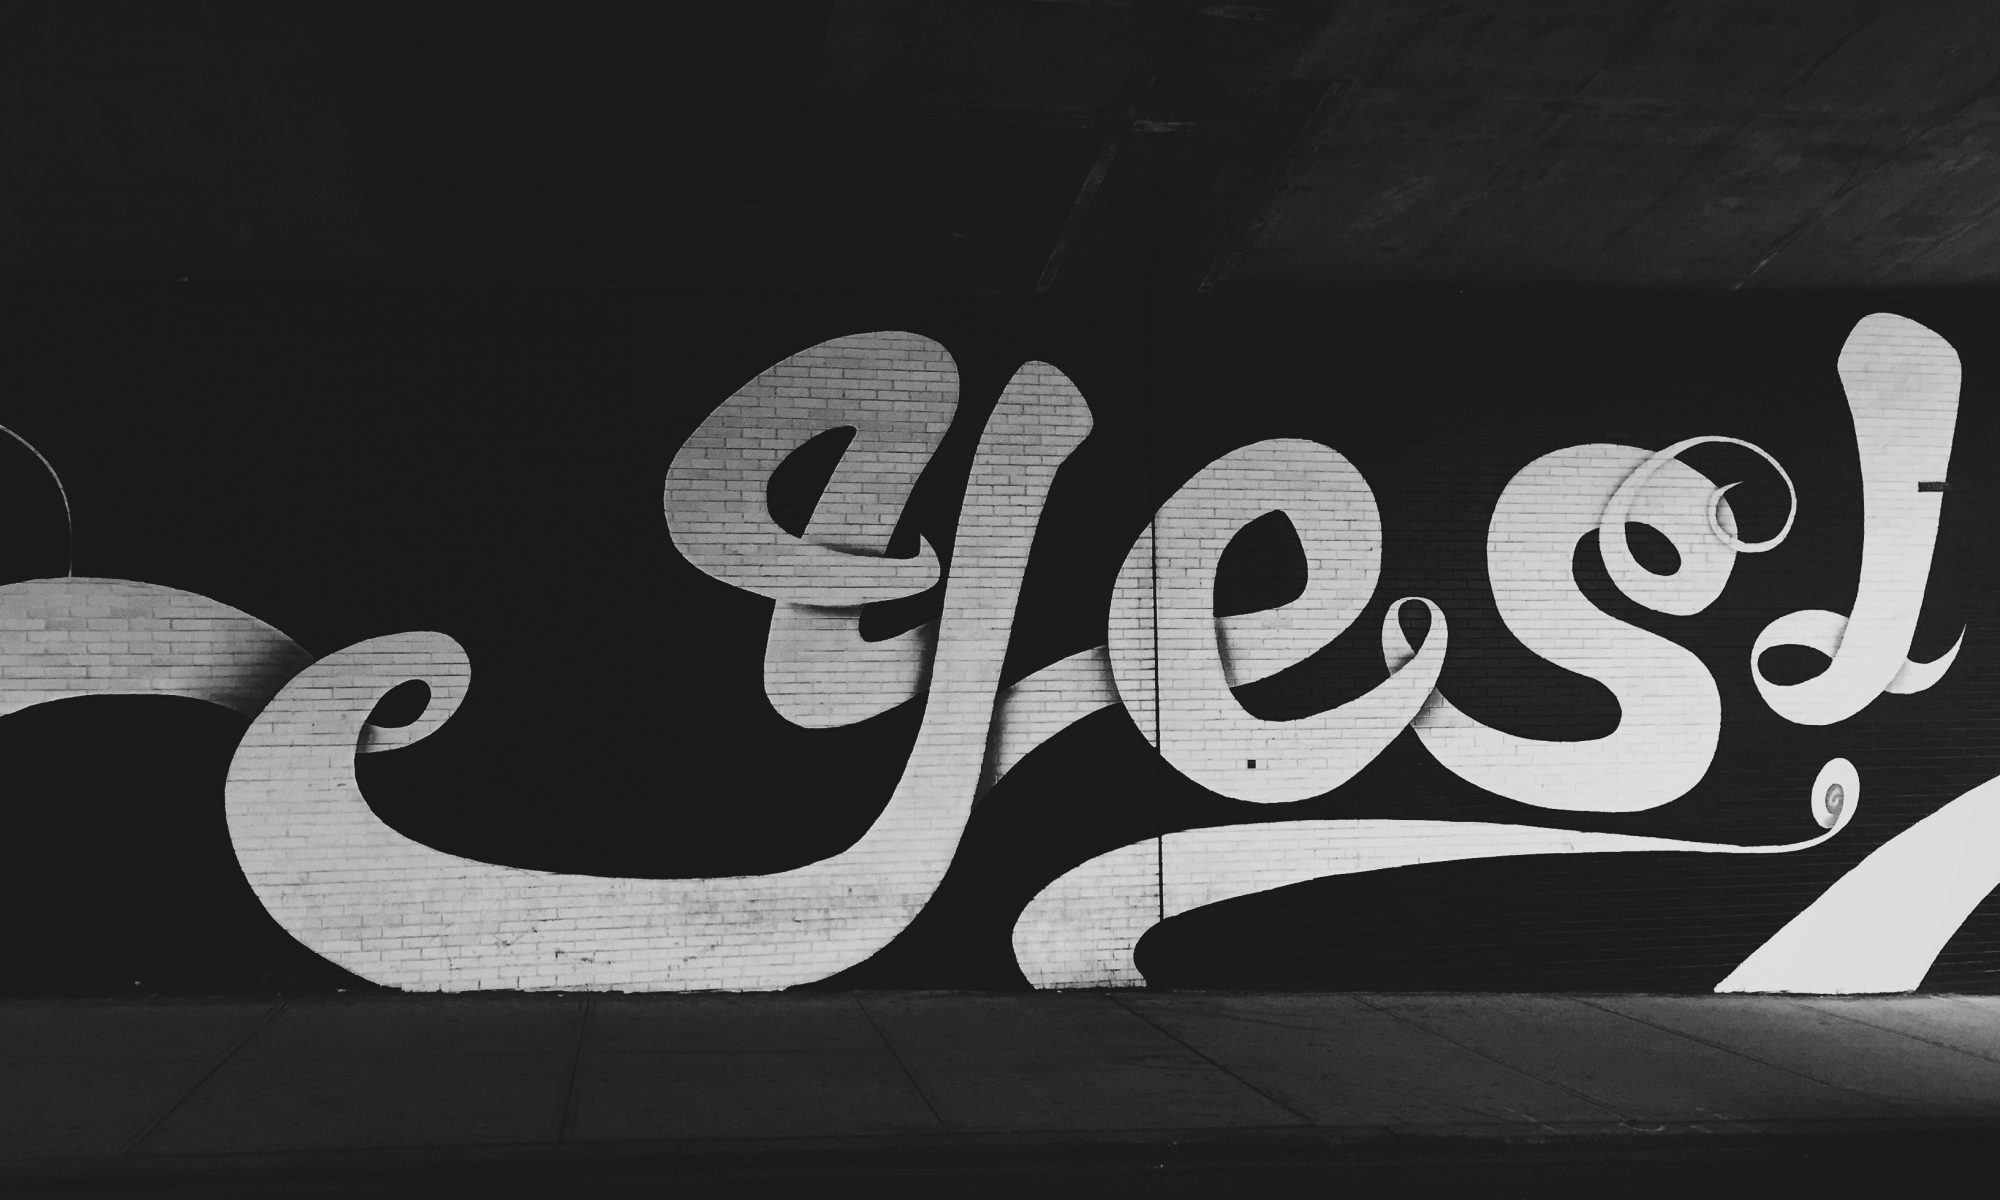 Yes written in grafitti